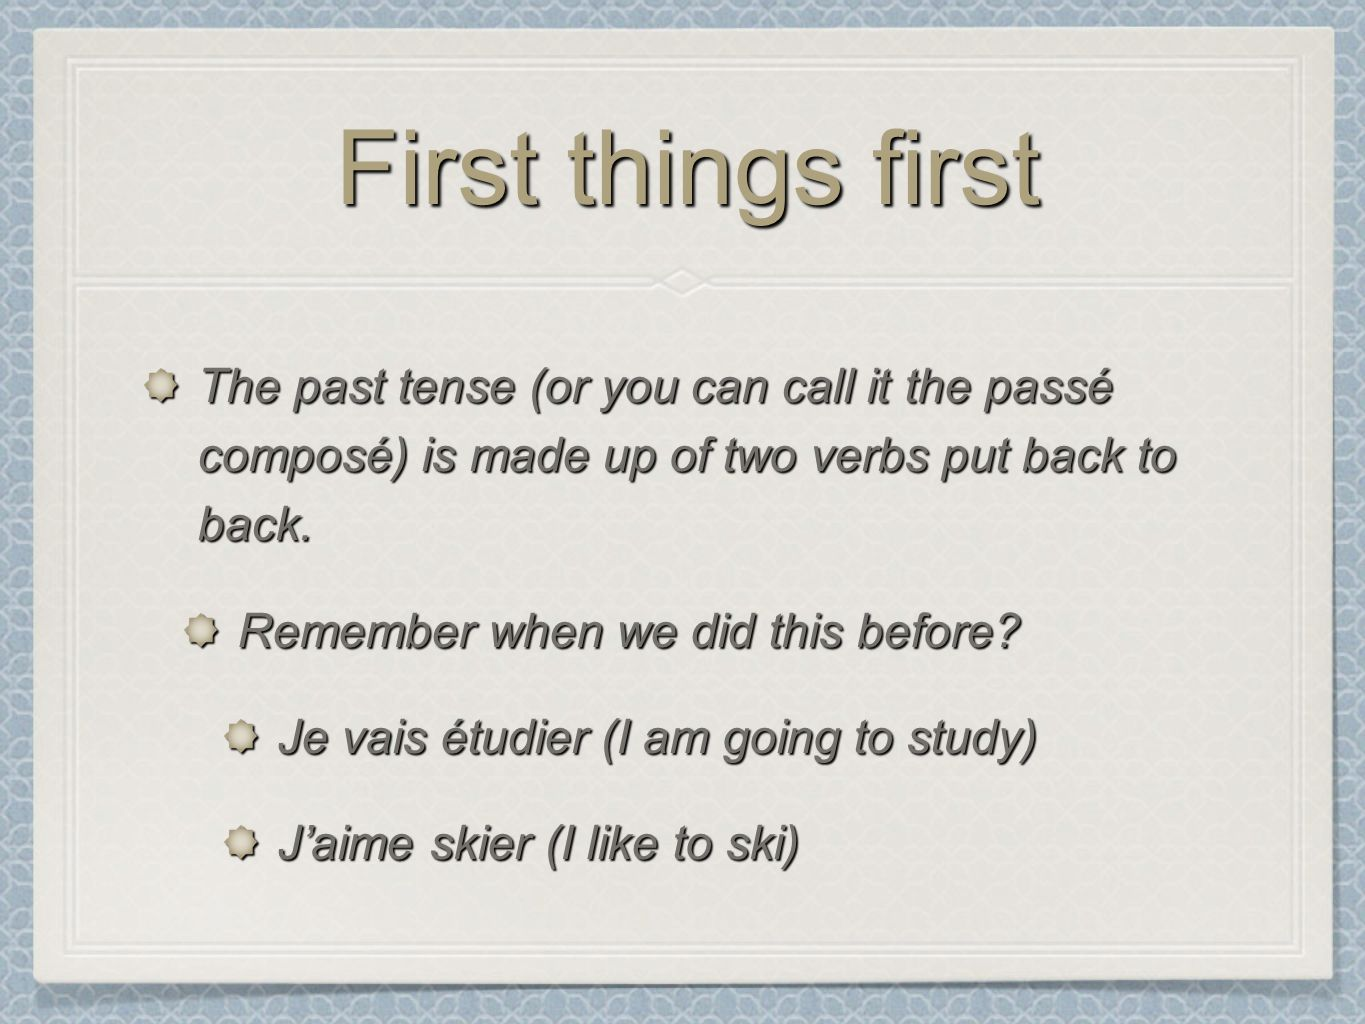 First things first The past tense (or you can call it the passé composé) is made up of two verbs put back to back.